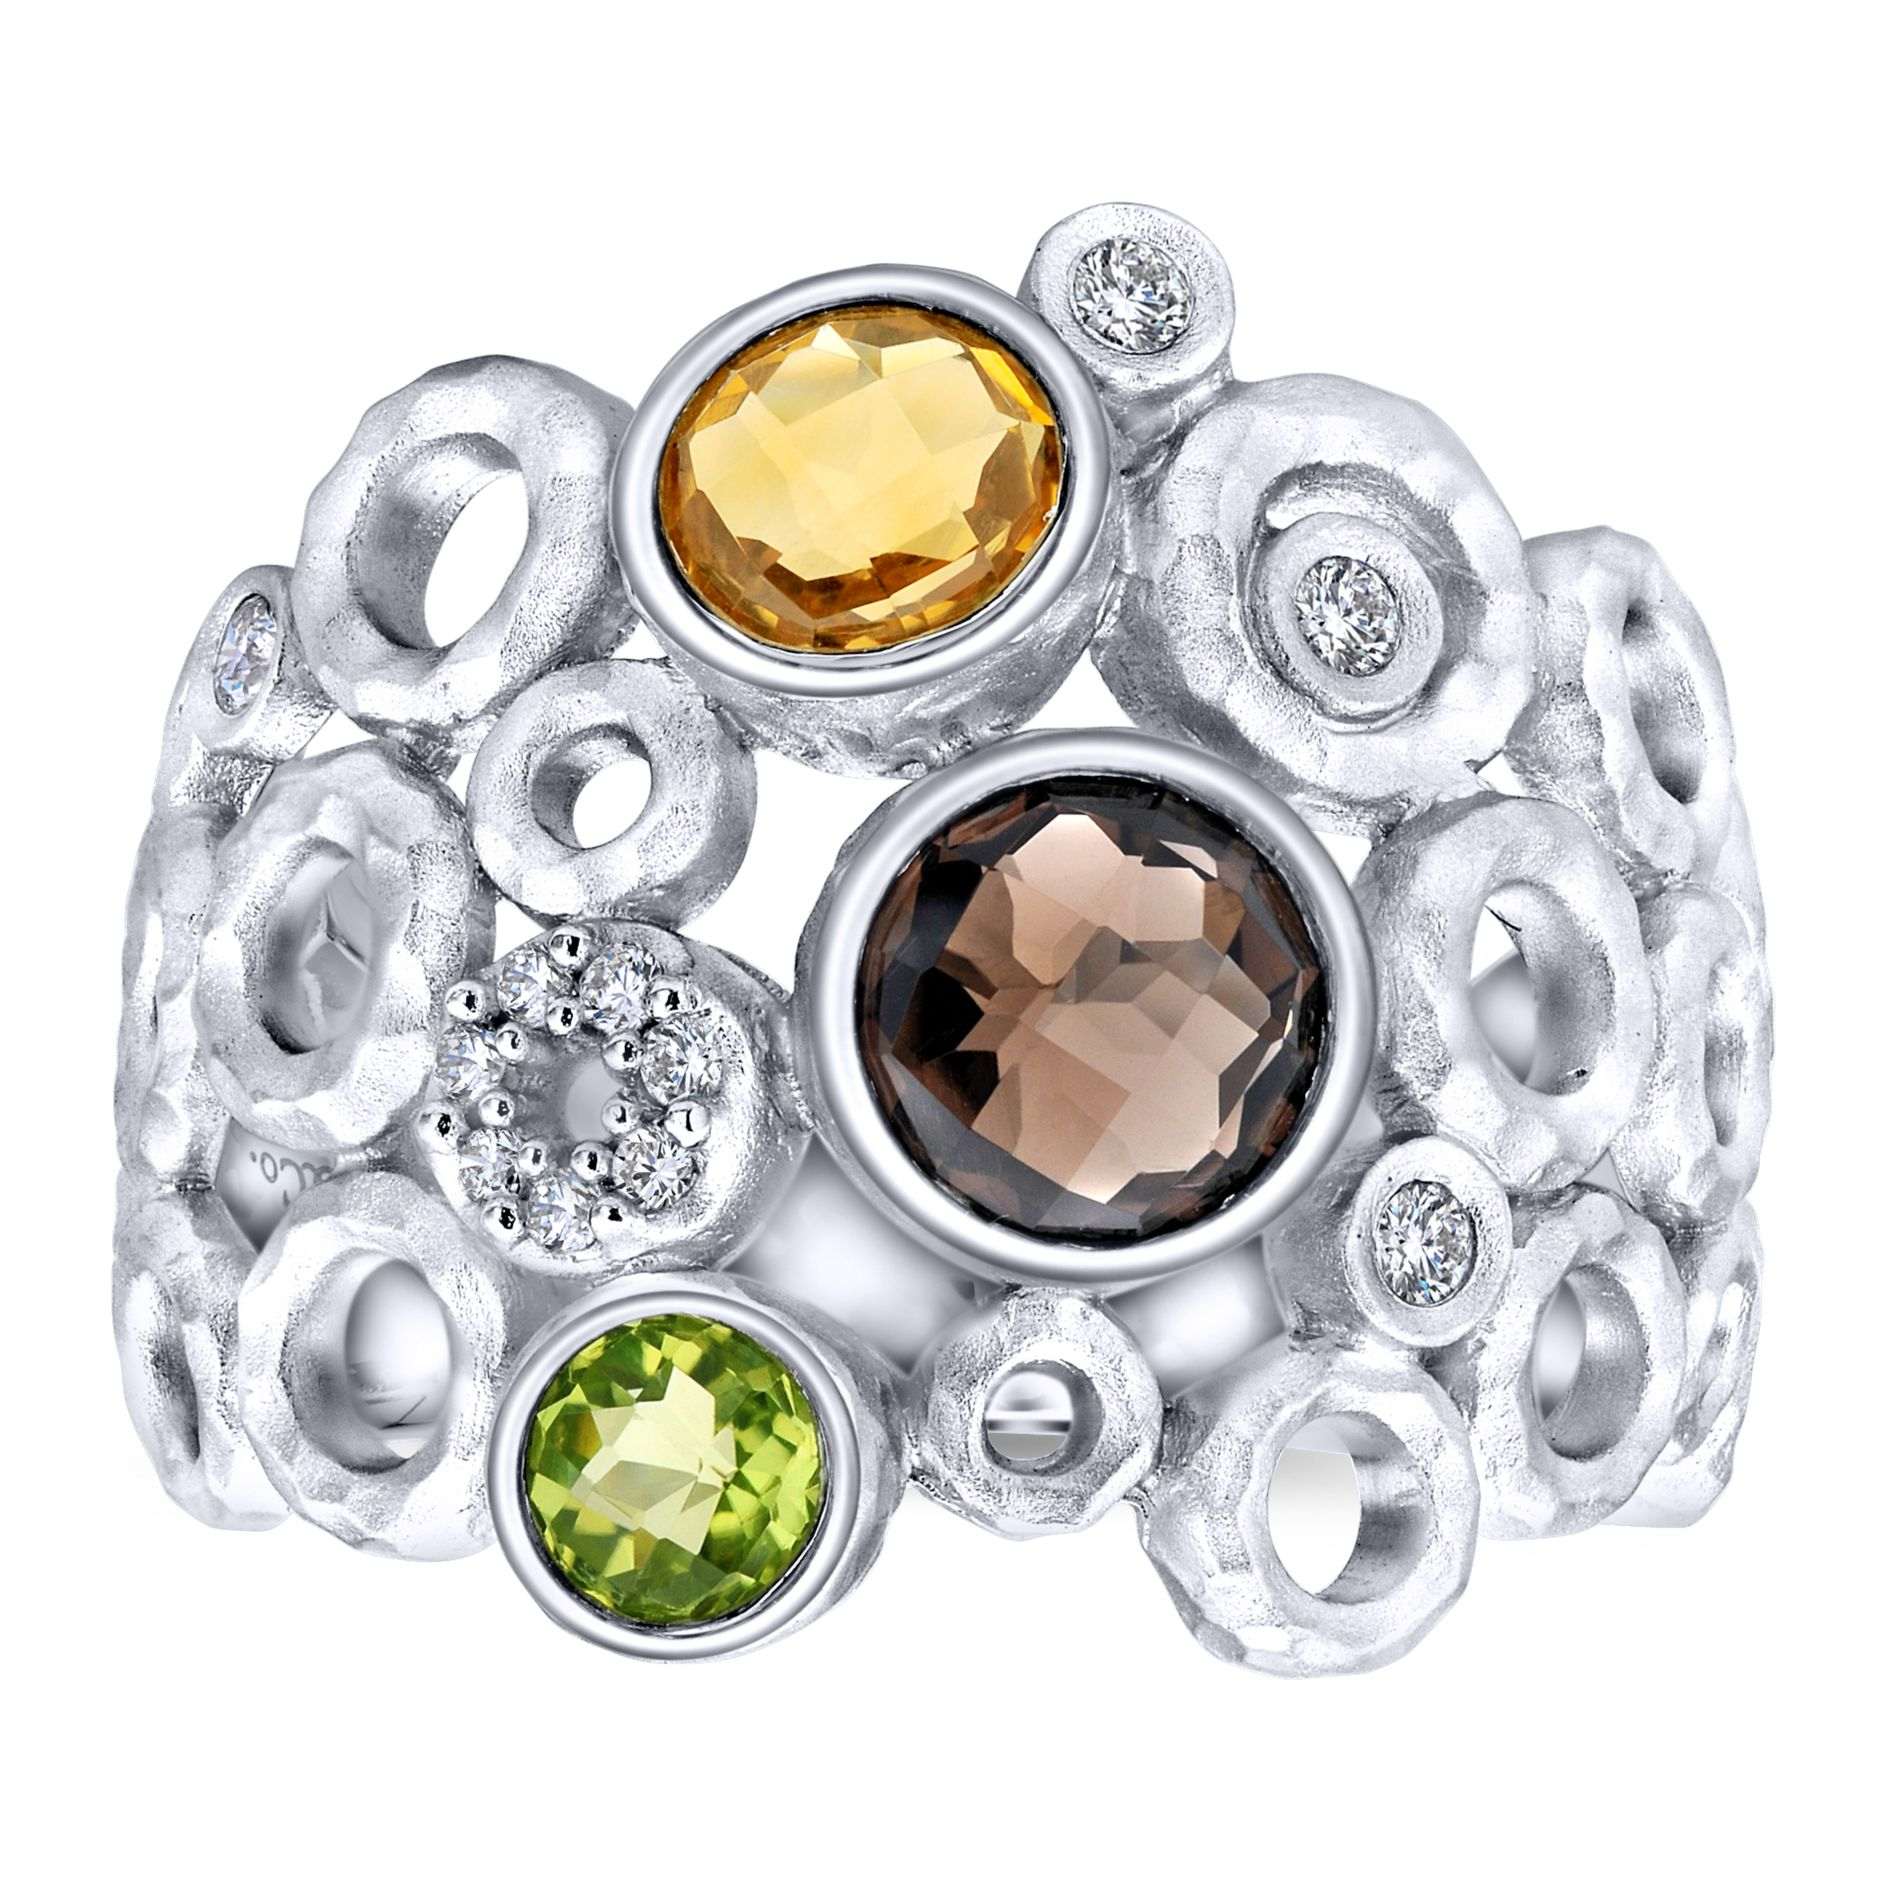 Rings - SILVER WIDE BAND MULTI COLOR STONE LADIES RING - image #4